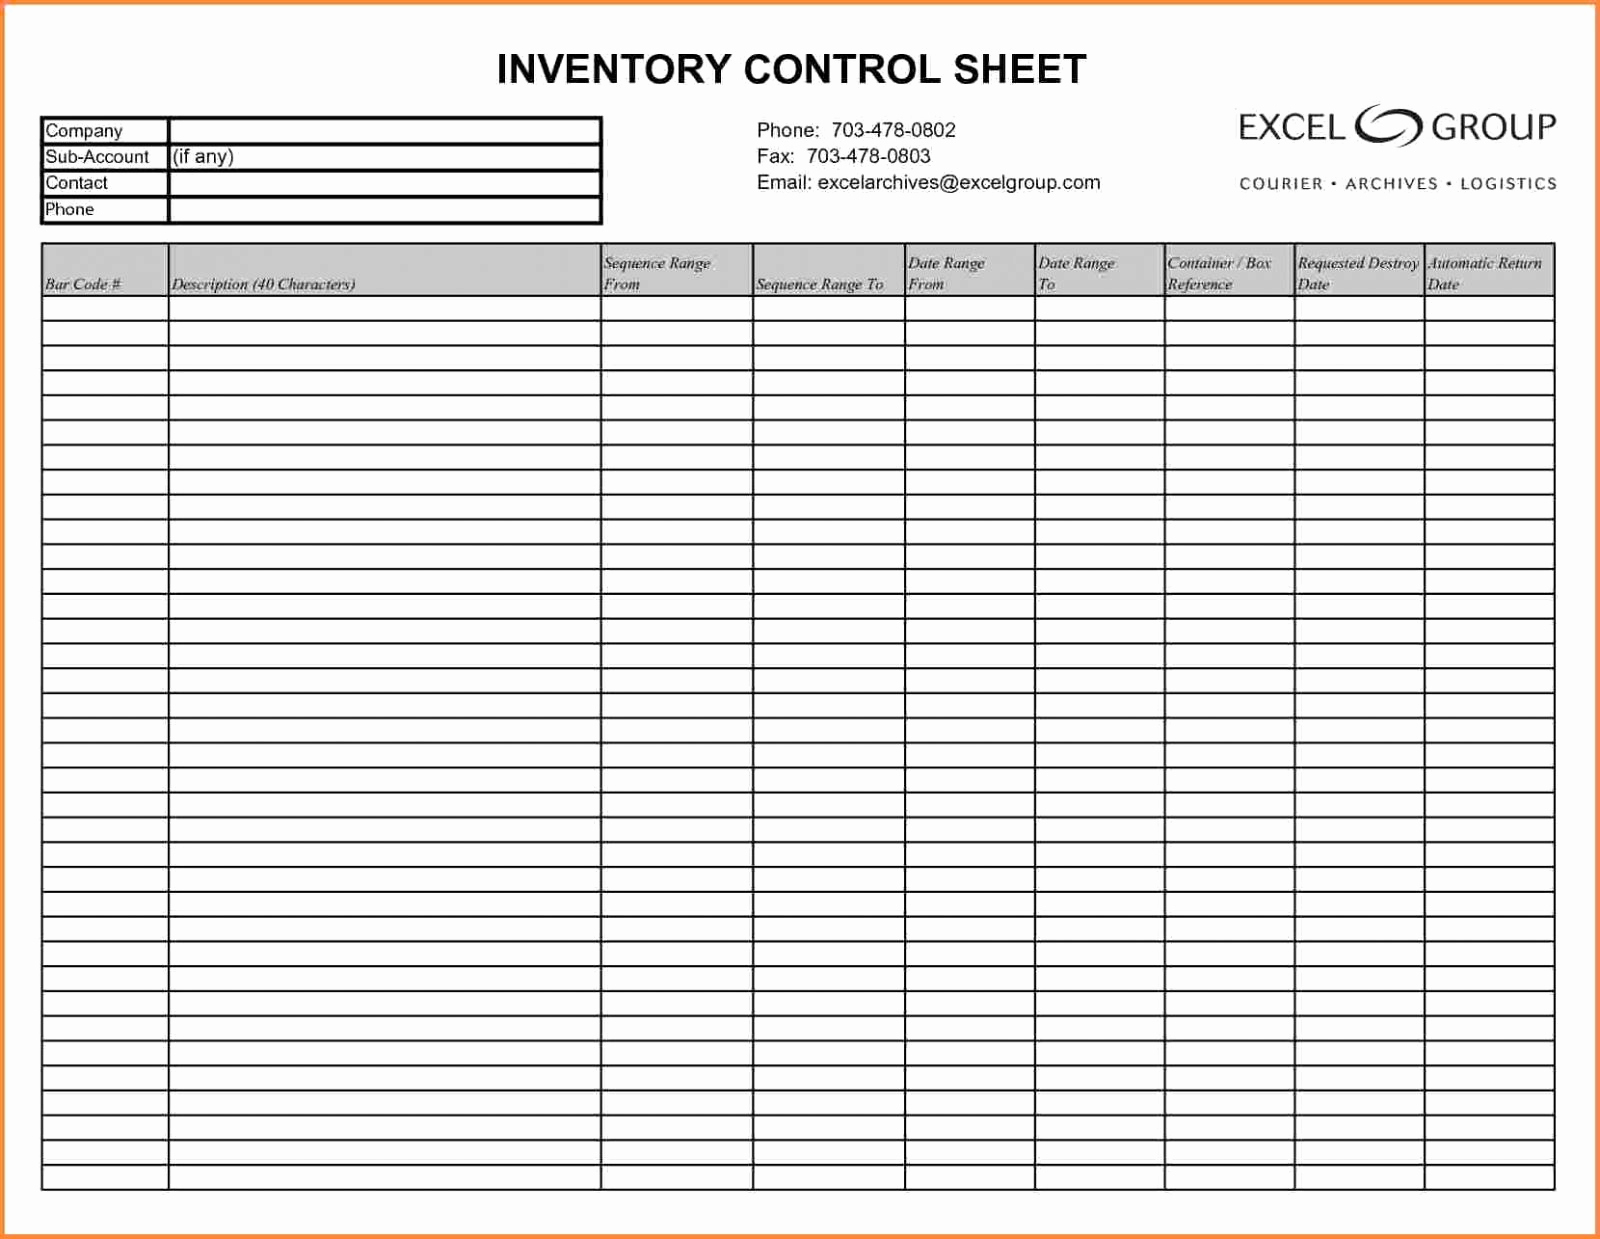 Gas Strut Calculation Spreadsheet Regarding Business Spreadsheets Free 2018 Online Spreadsheet Retirement With